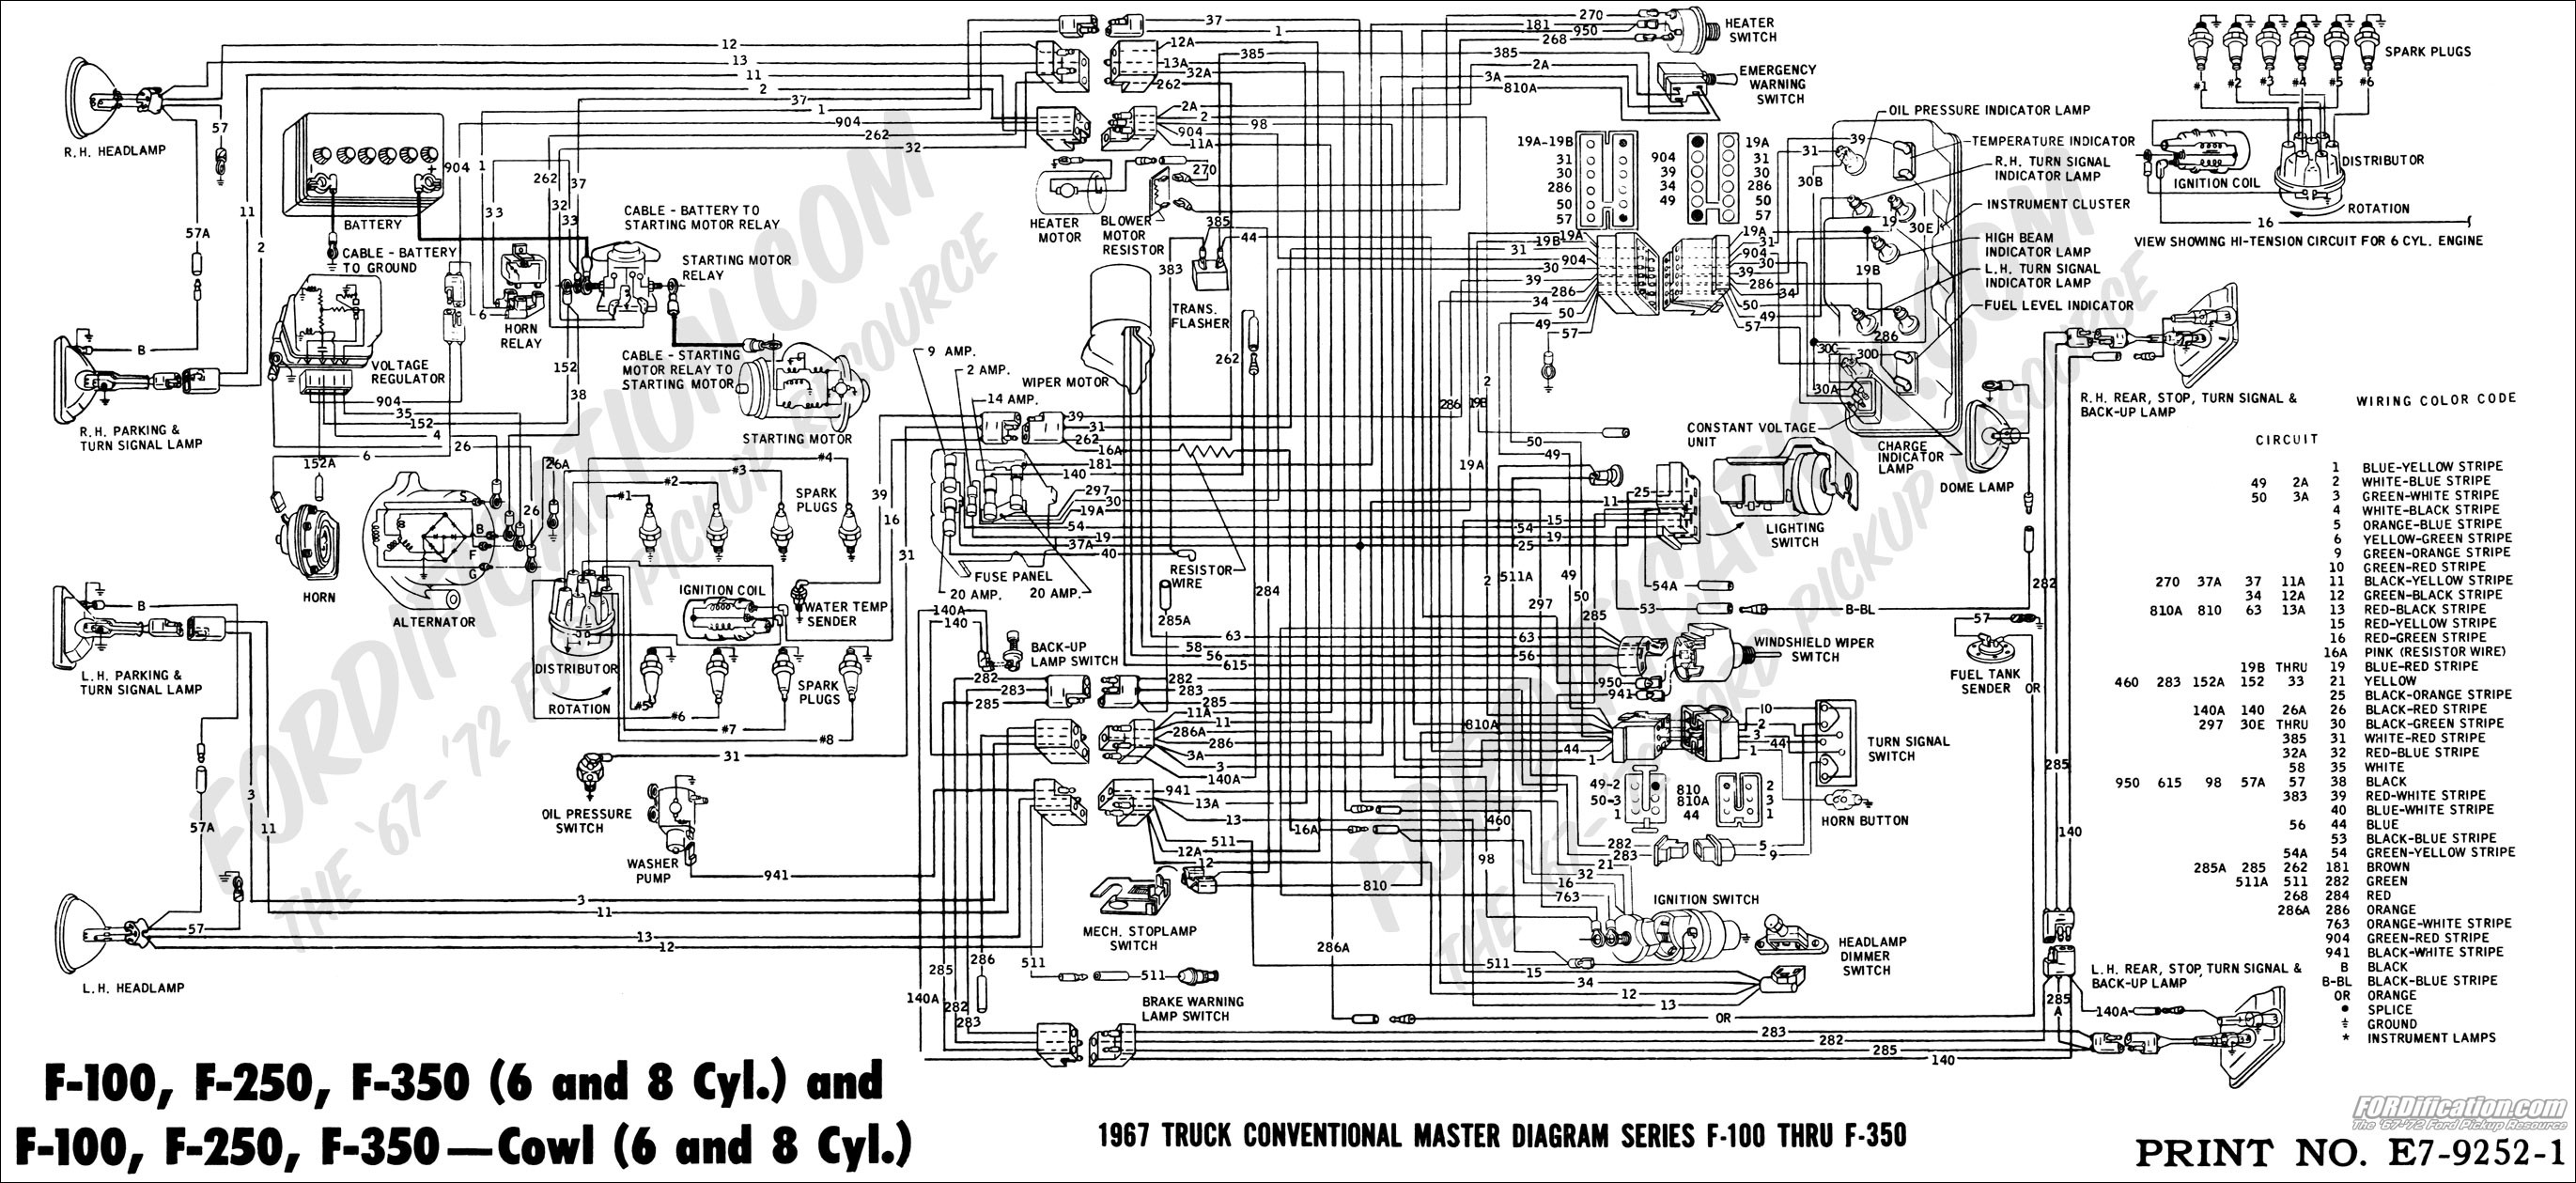 94 ford Ranger Engine Diagram 1983 ford 5 0 Engine Diagram Wiring Diagram Data today Of 94 ford Ranger Engine Diagram Mercruiser 5 0 Wiring Diagram ford Wiring Diagram Pass